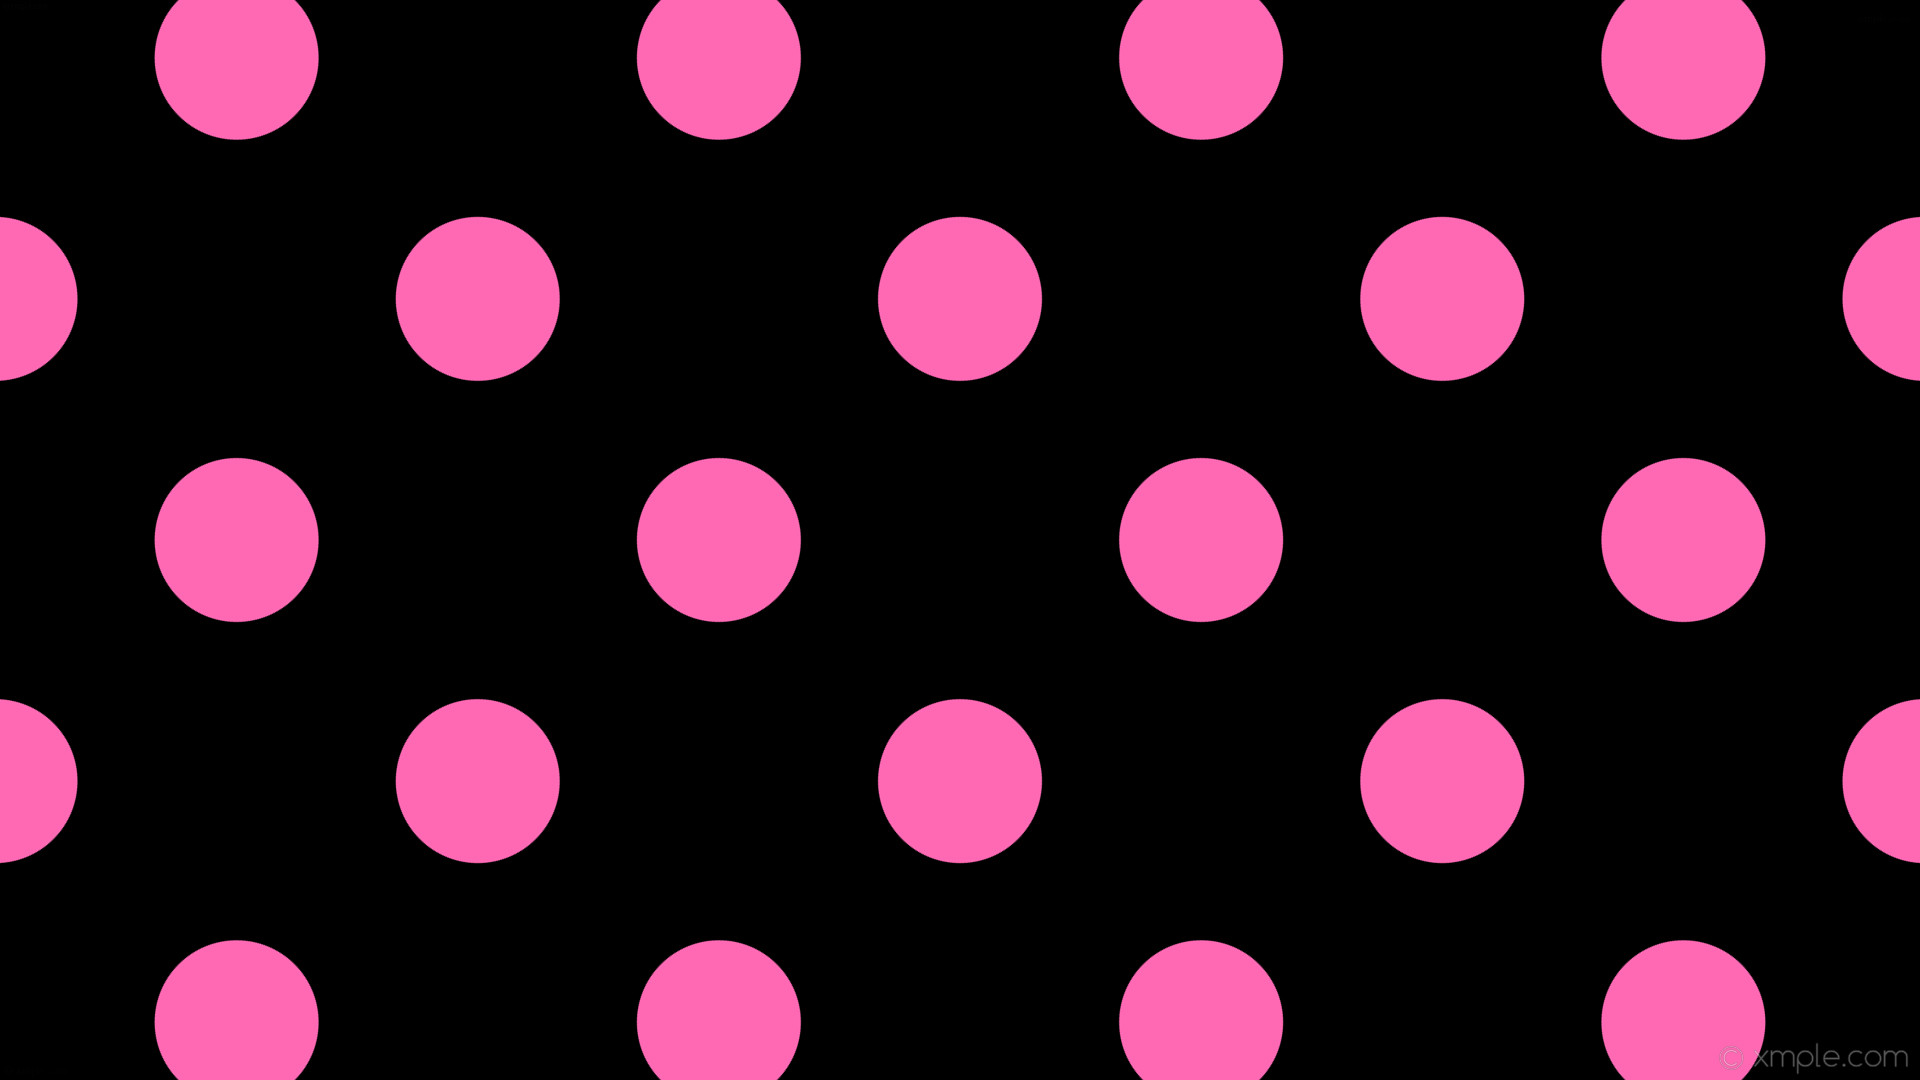 Pink and Black Wallpaper Backgrounds 71 images